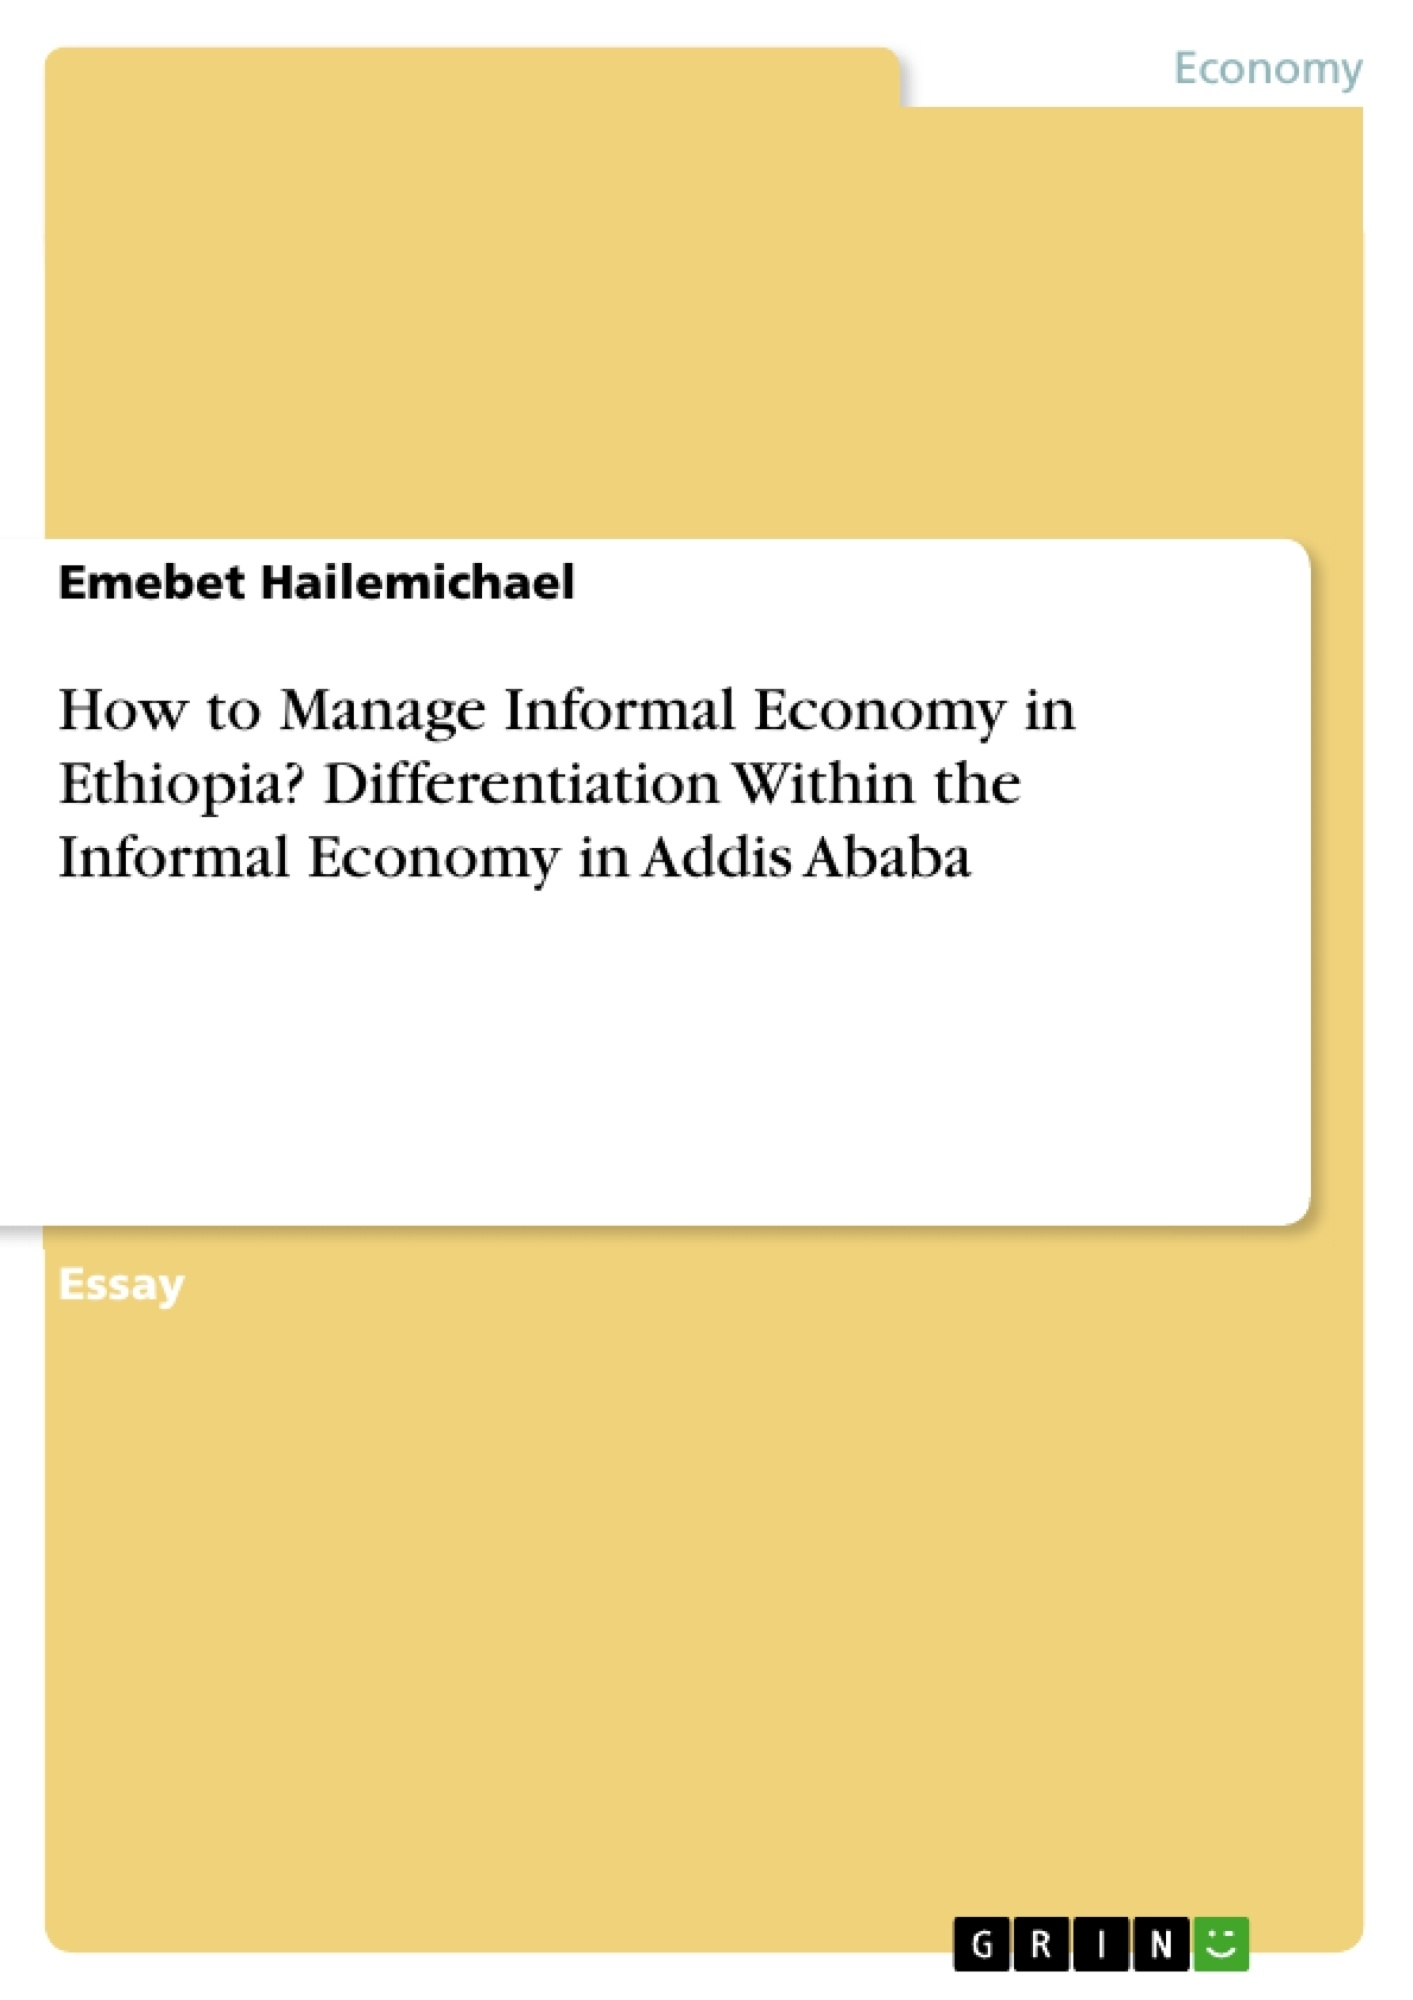 Title: How to Manage Informal Economy in Ethiopia? Differentiation Within the Informal Economy in Addis Ababa